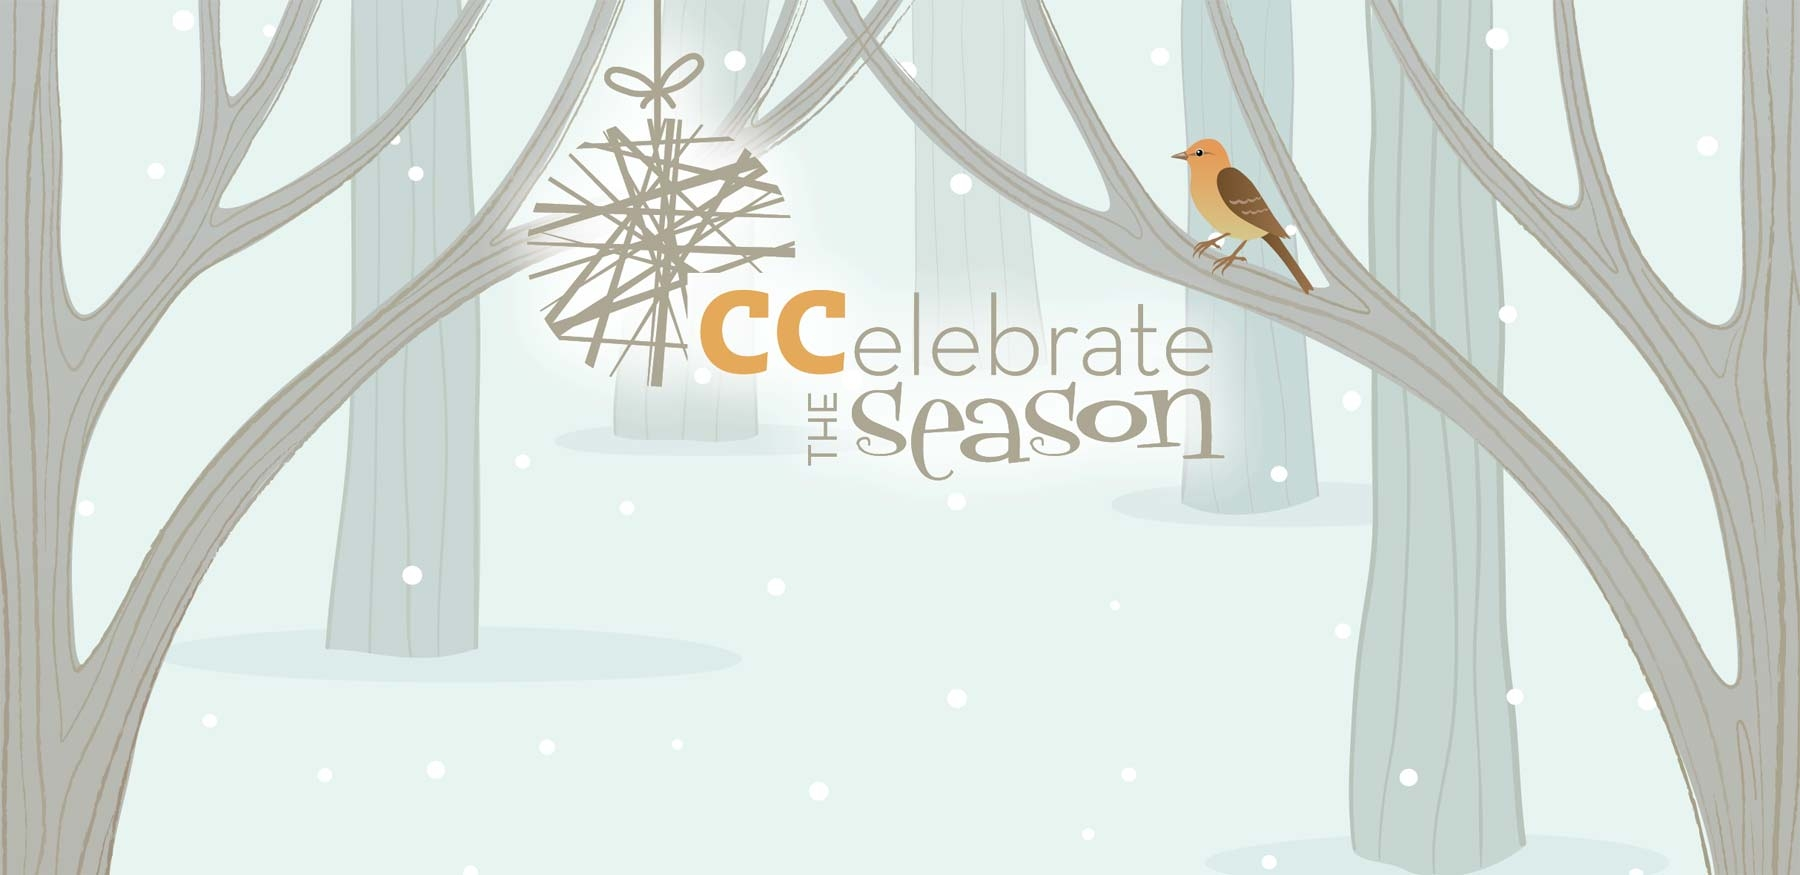 CCelebrate the Season